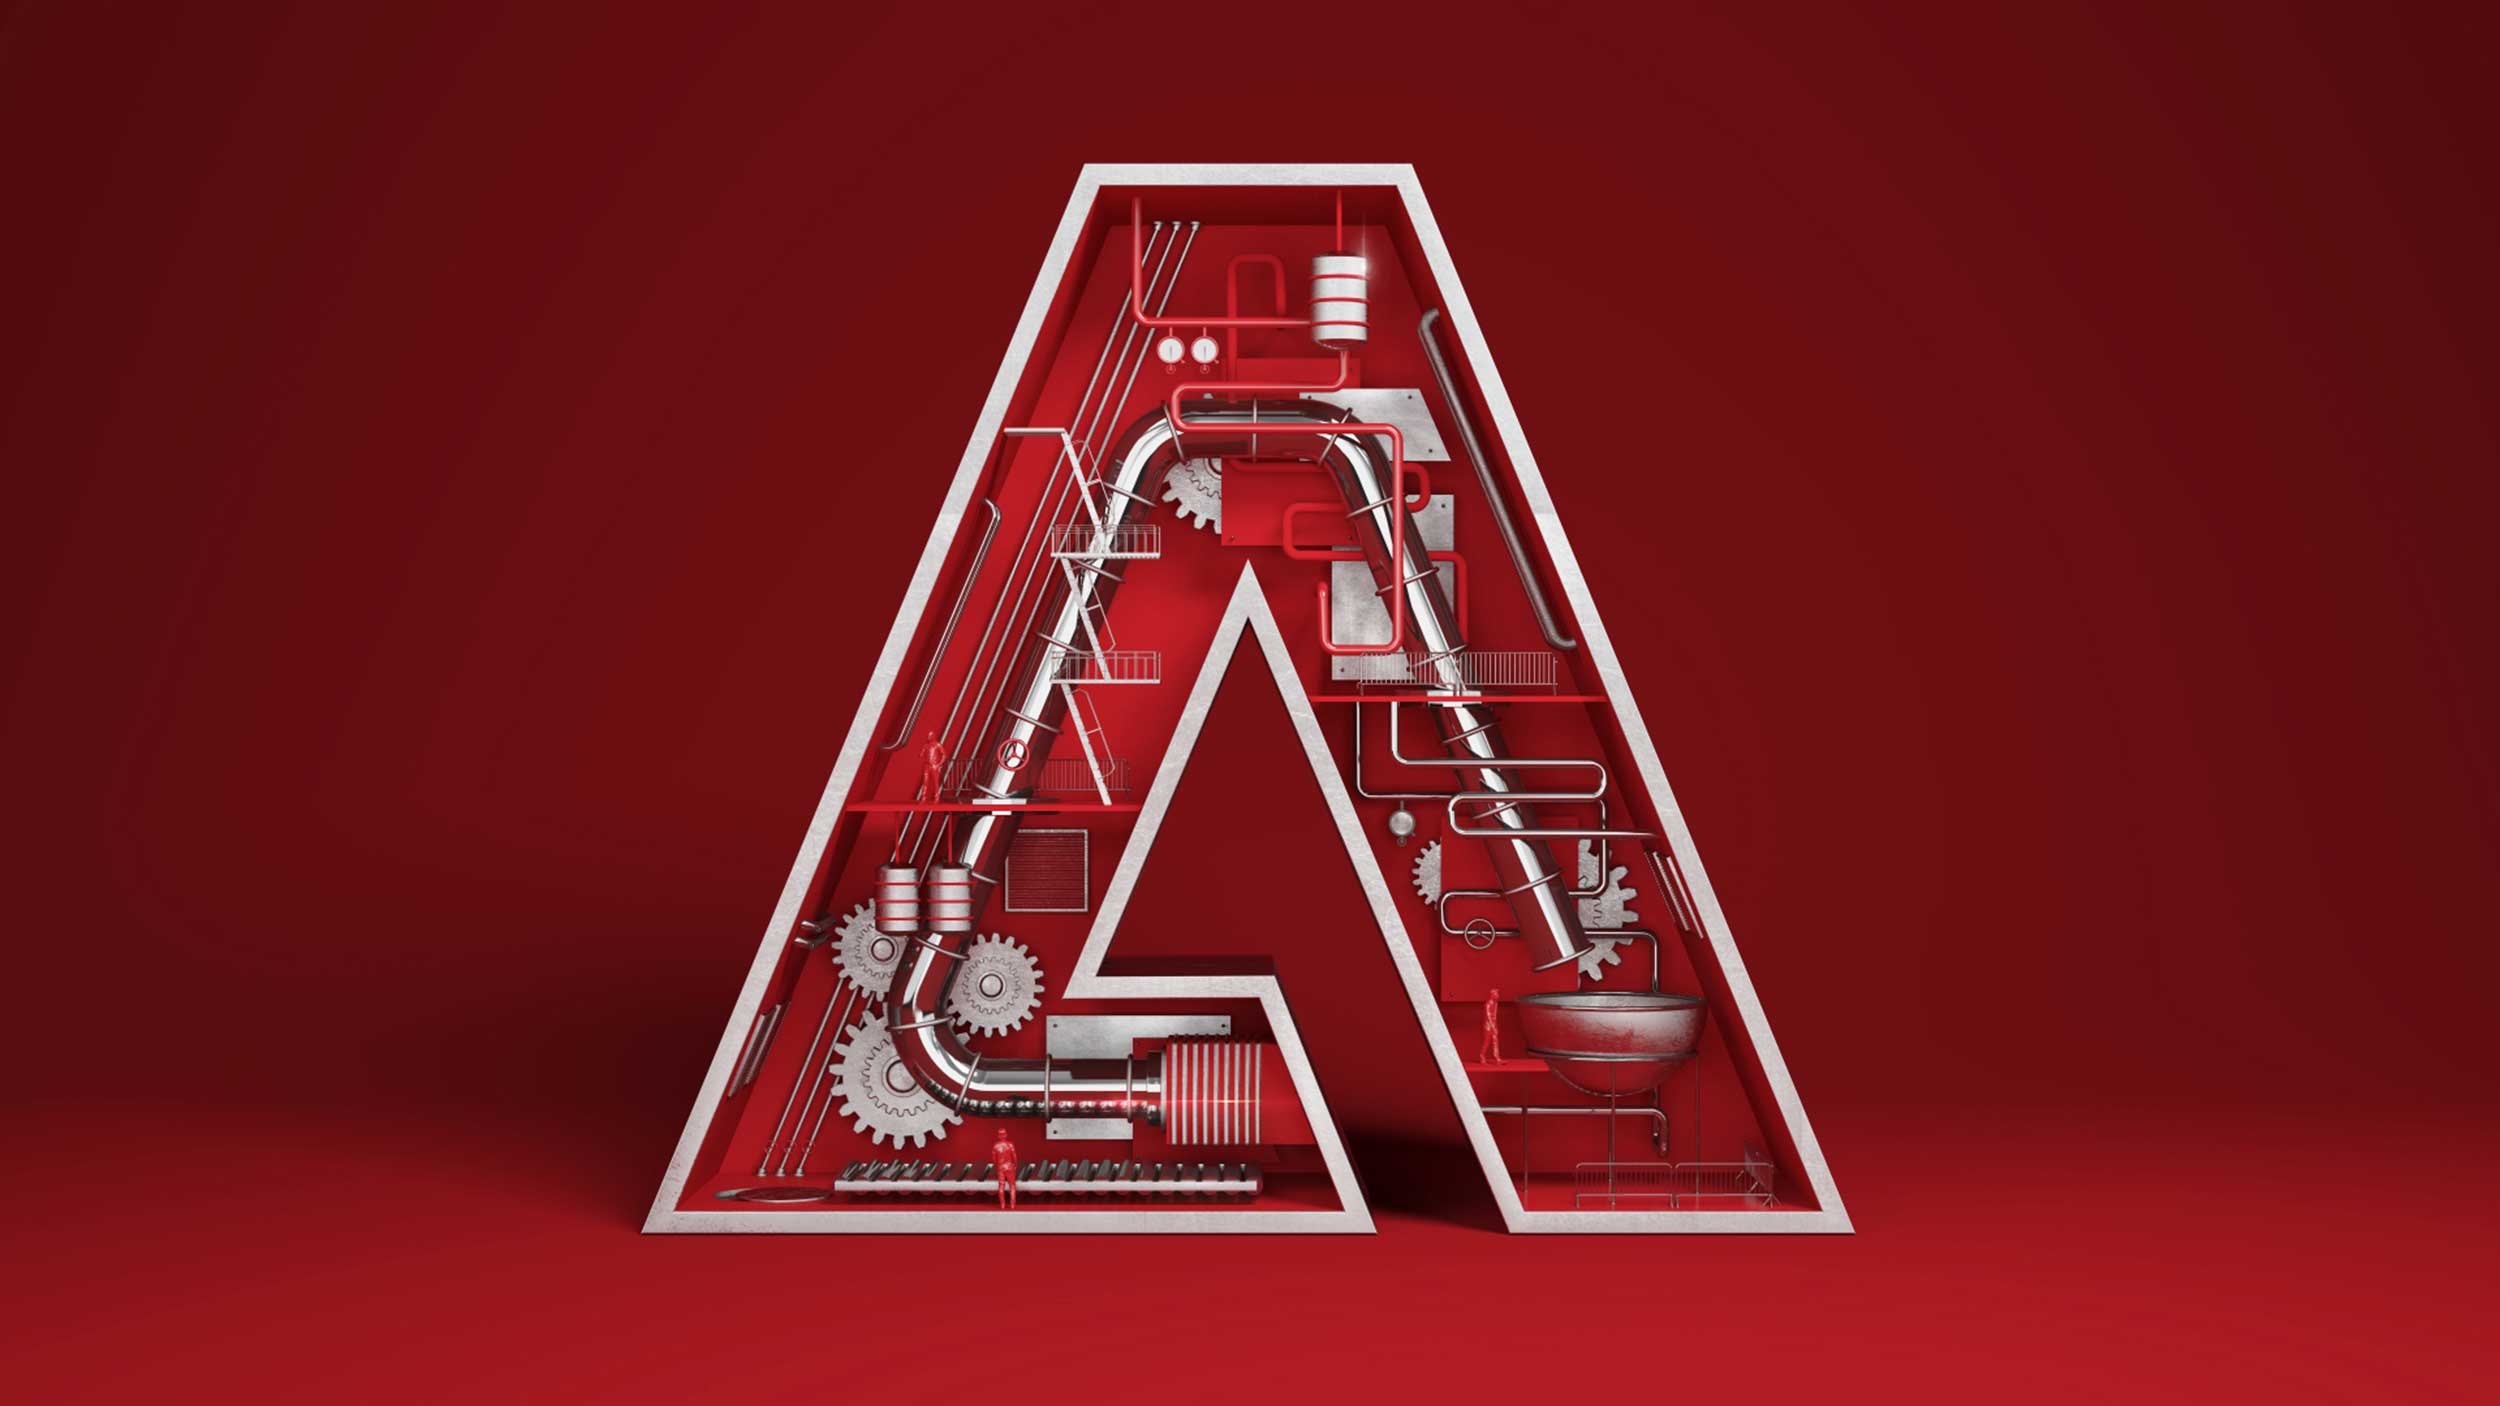 cgi-logos-type-design-Red-and-Silver-see-through-A-with-mechanics--Nico Castro